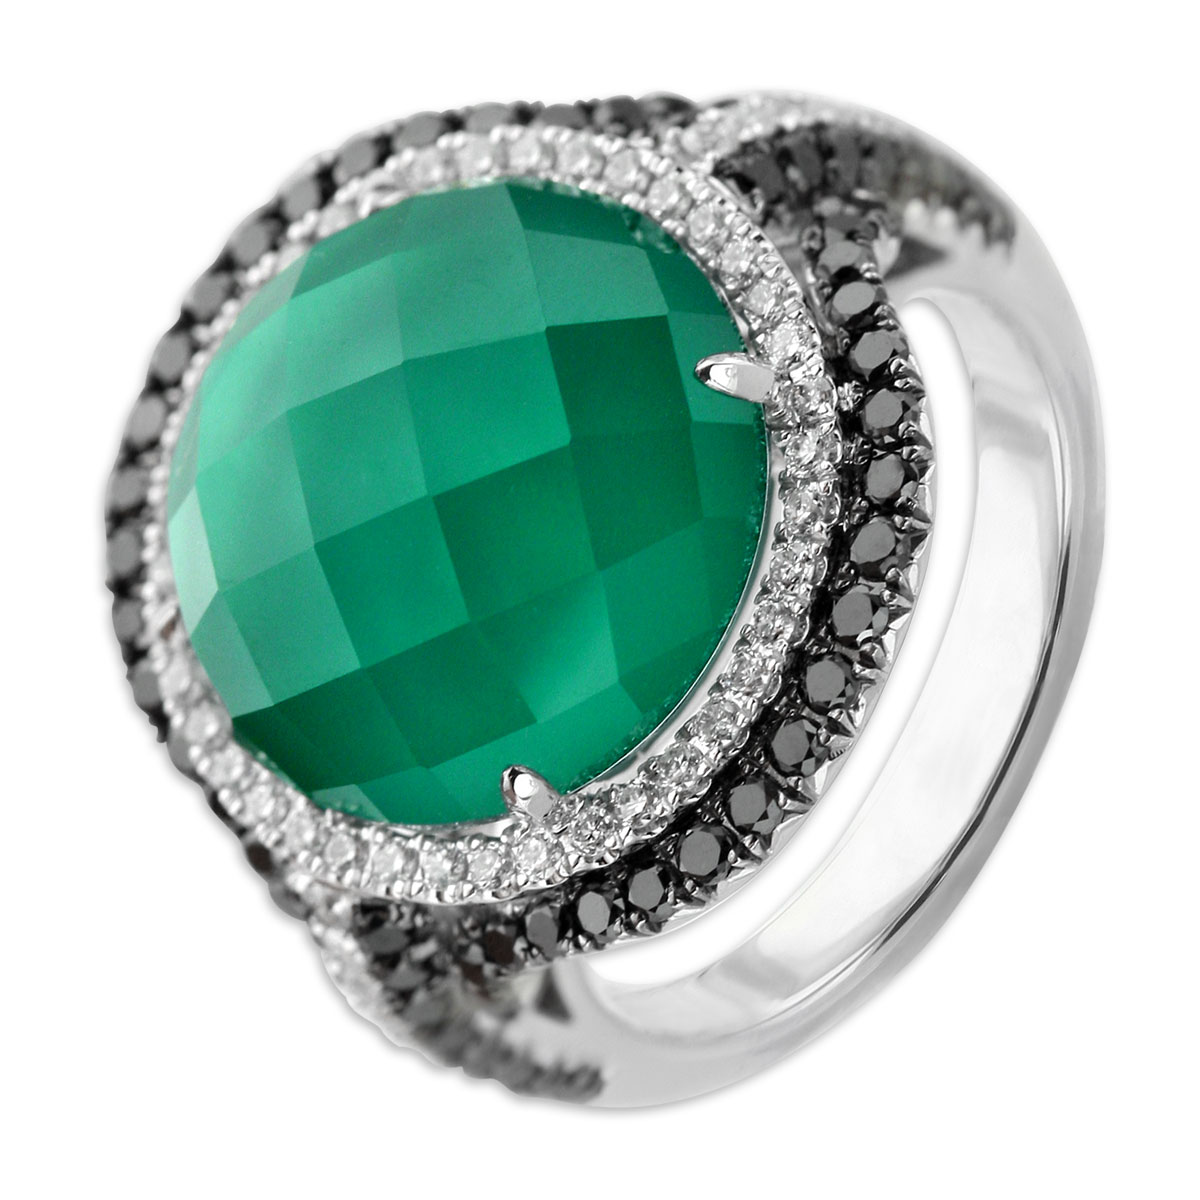 339575-White Topaz Over Green Agate & Diamond Ring